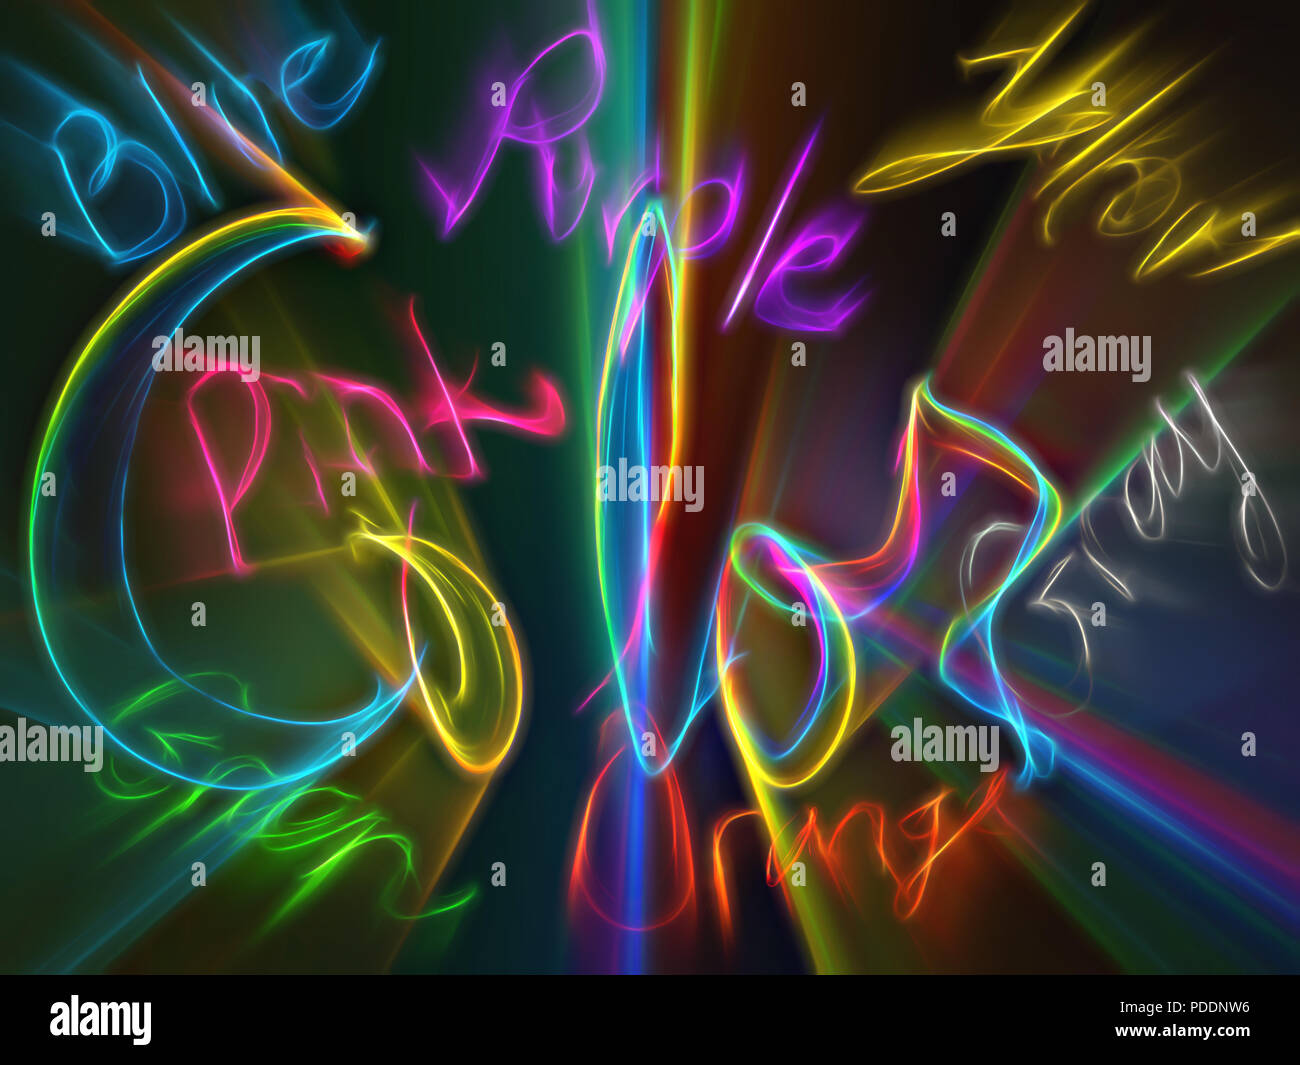 Handwritten words are the same color as the color the word describes. - Stock Image